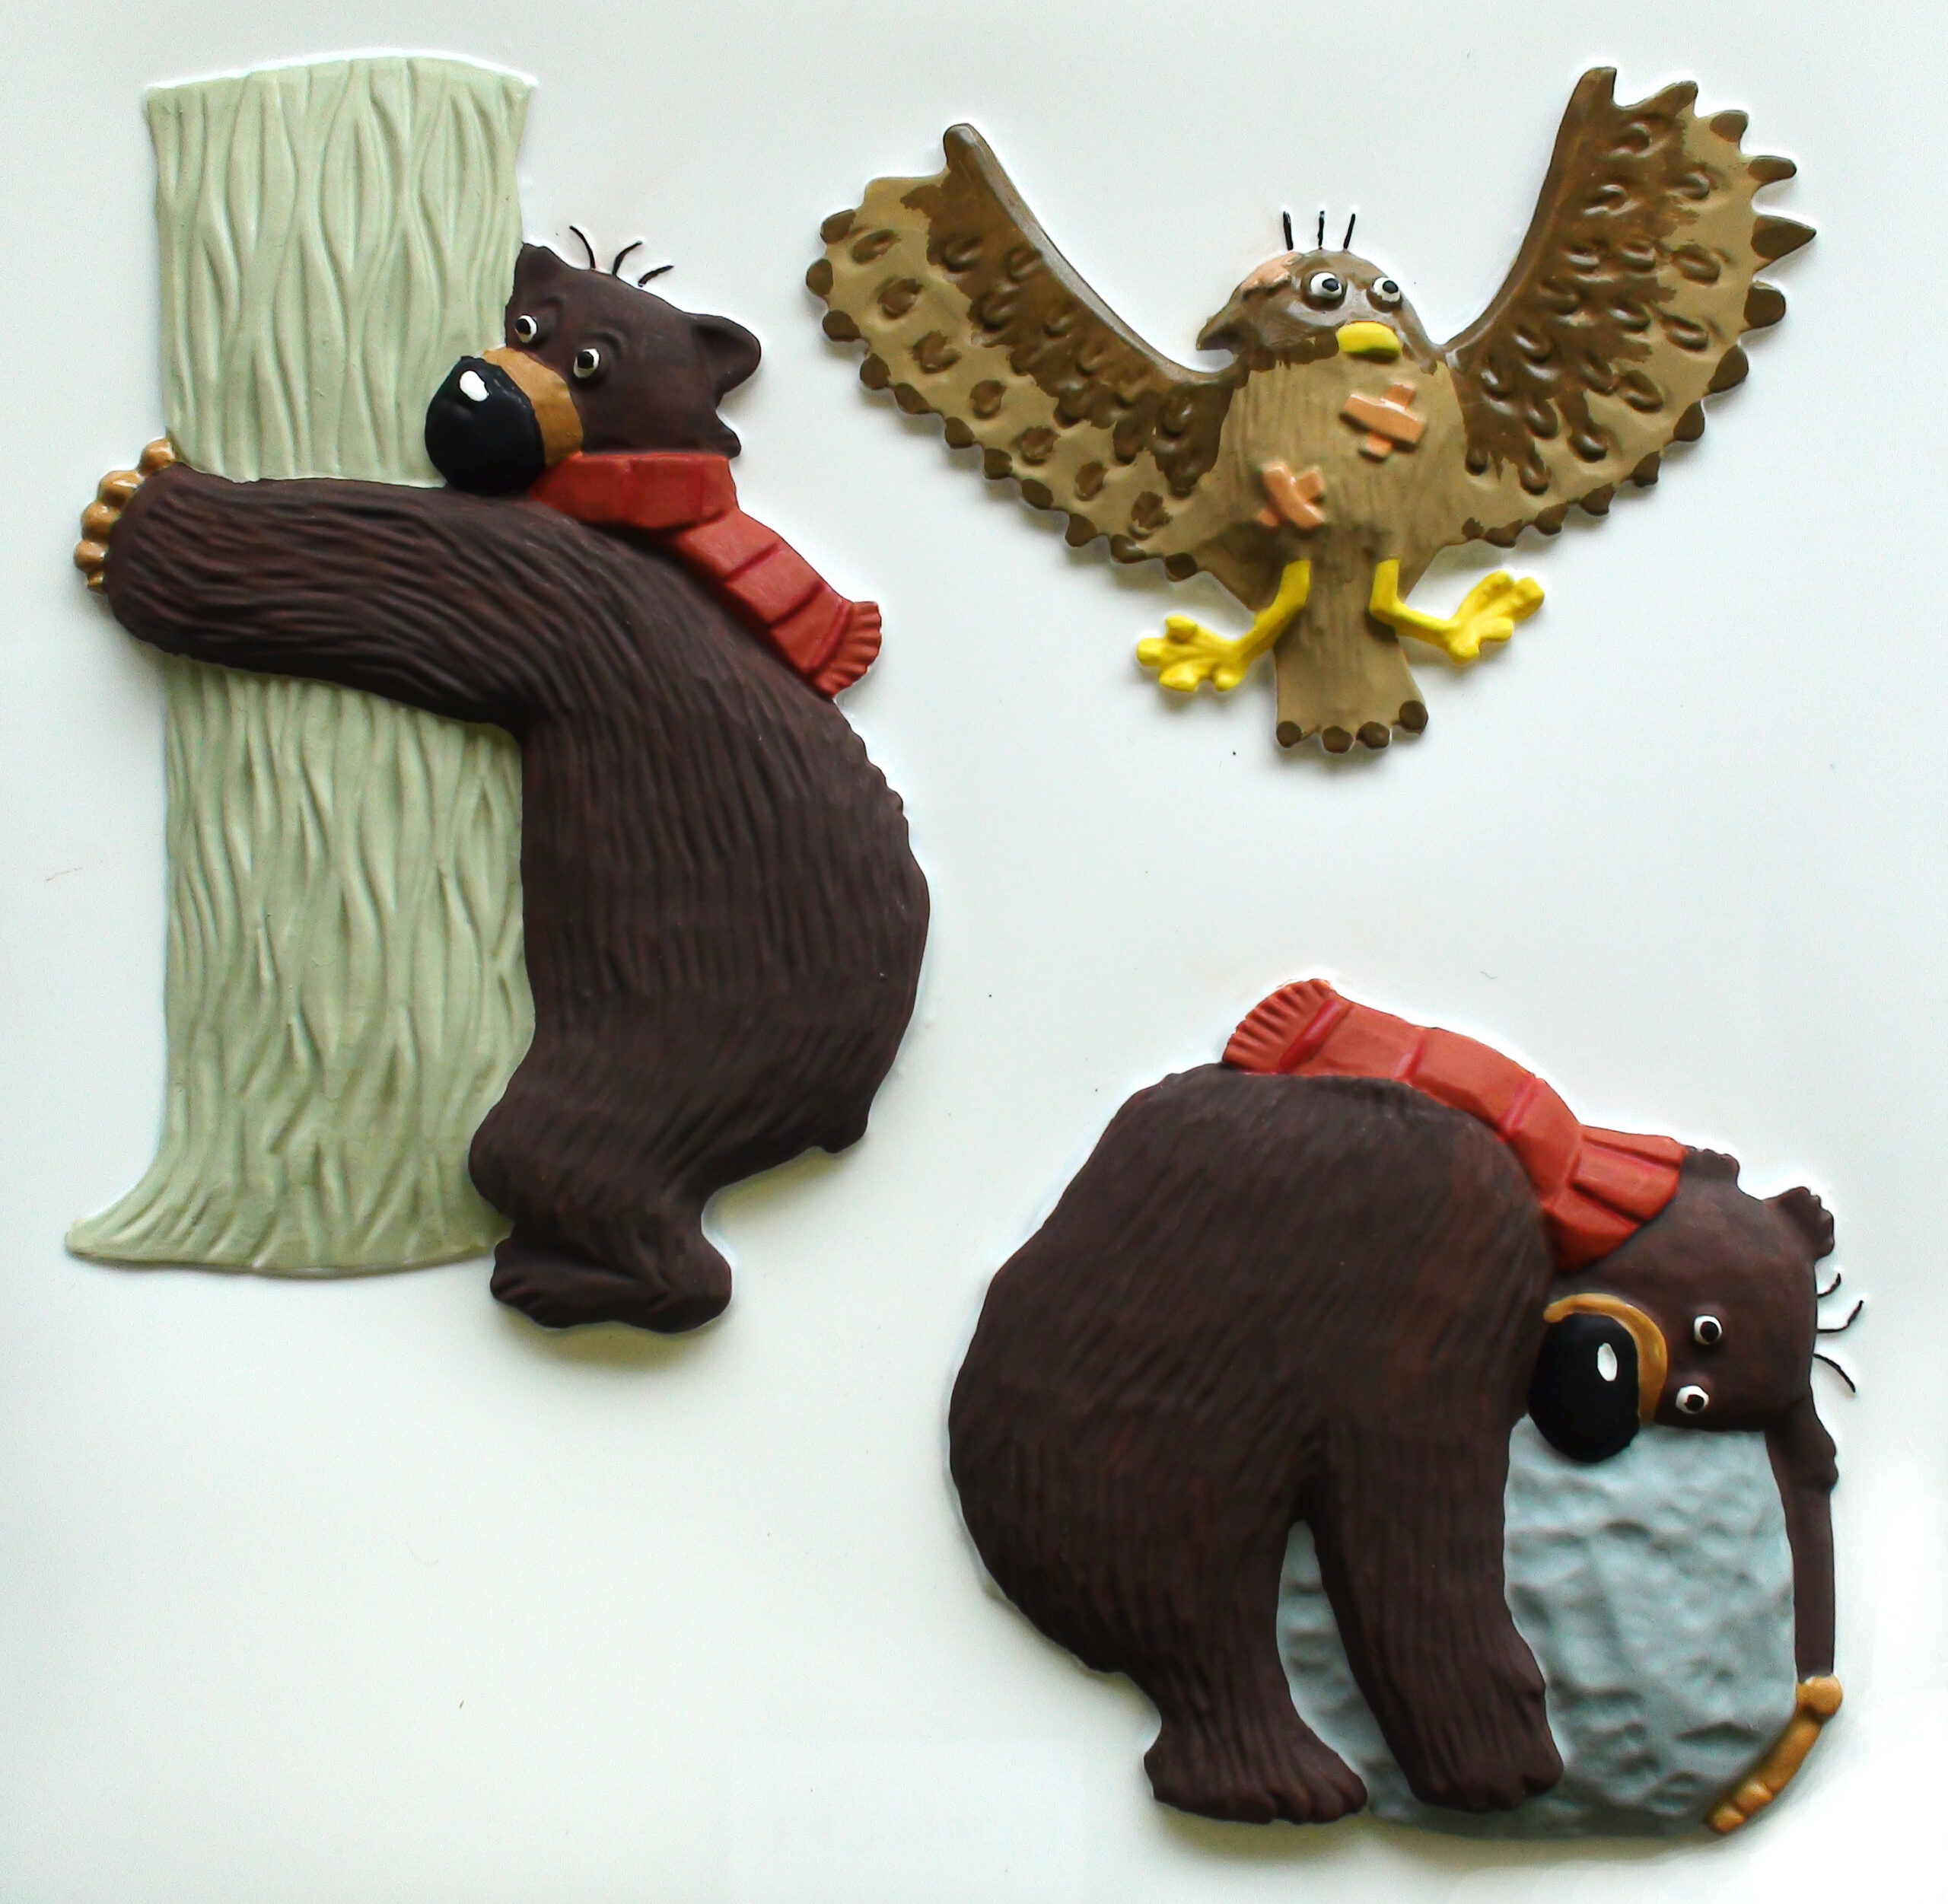 Hugless Douglas tactile pictures, showing him hugging a tree, a rock and an owl in flight.